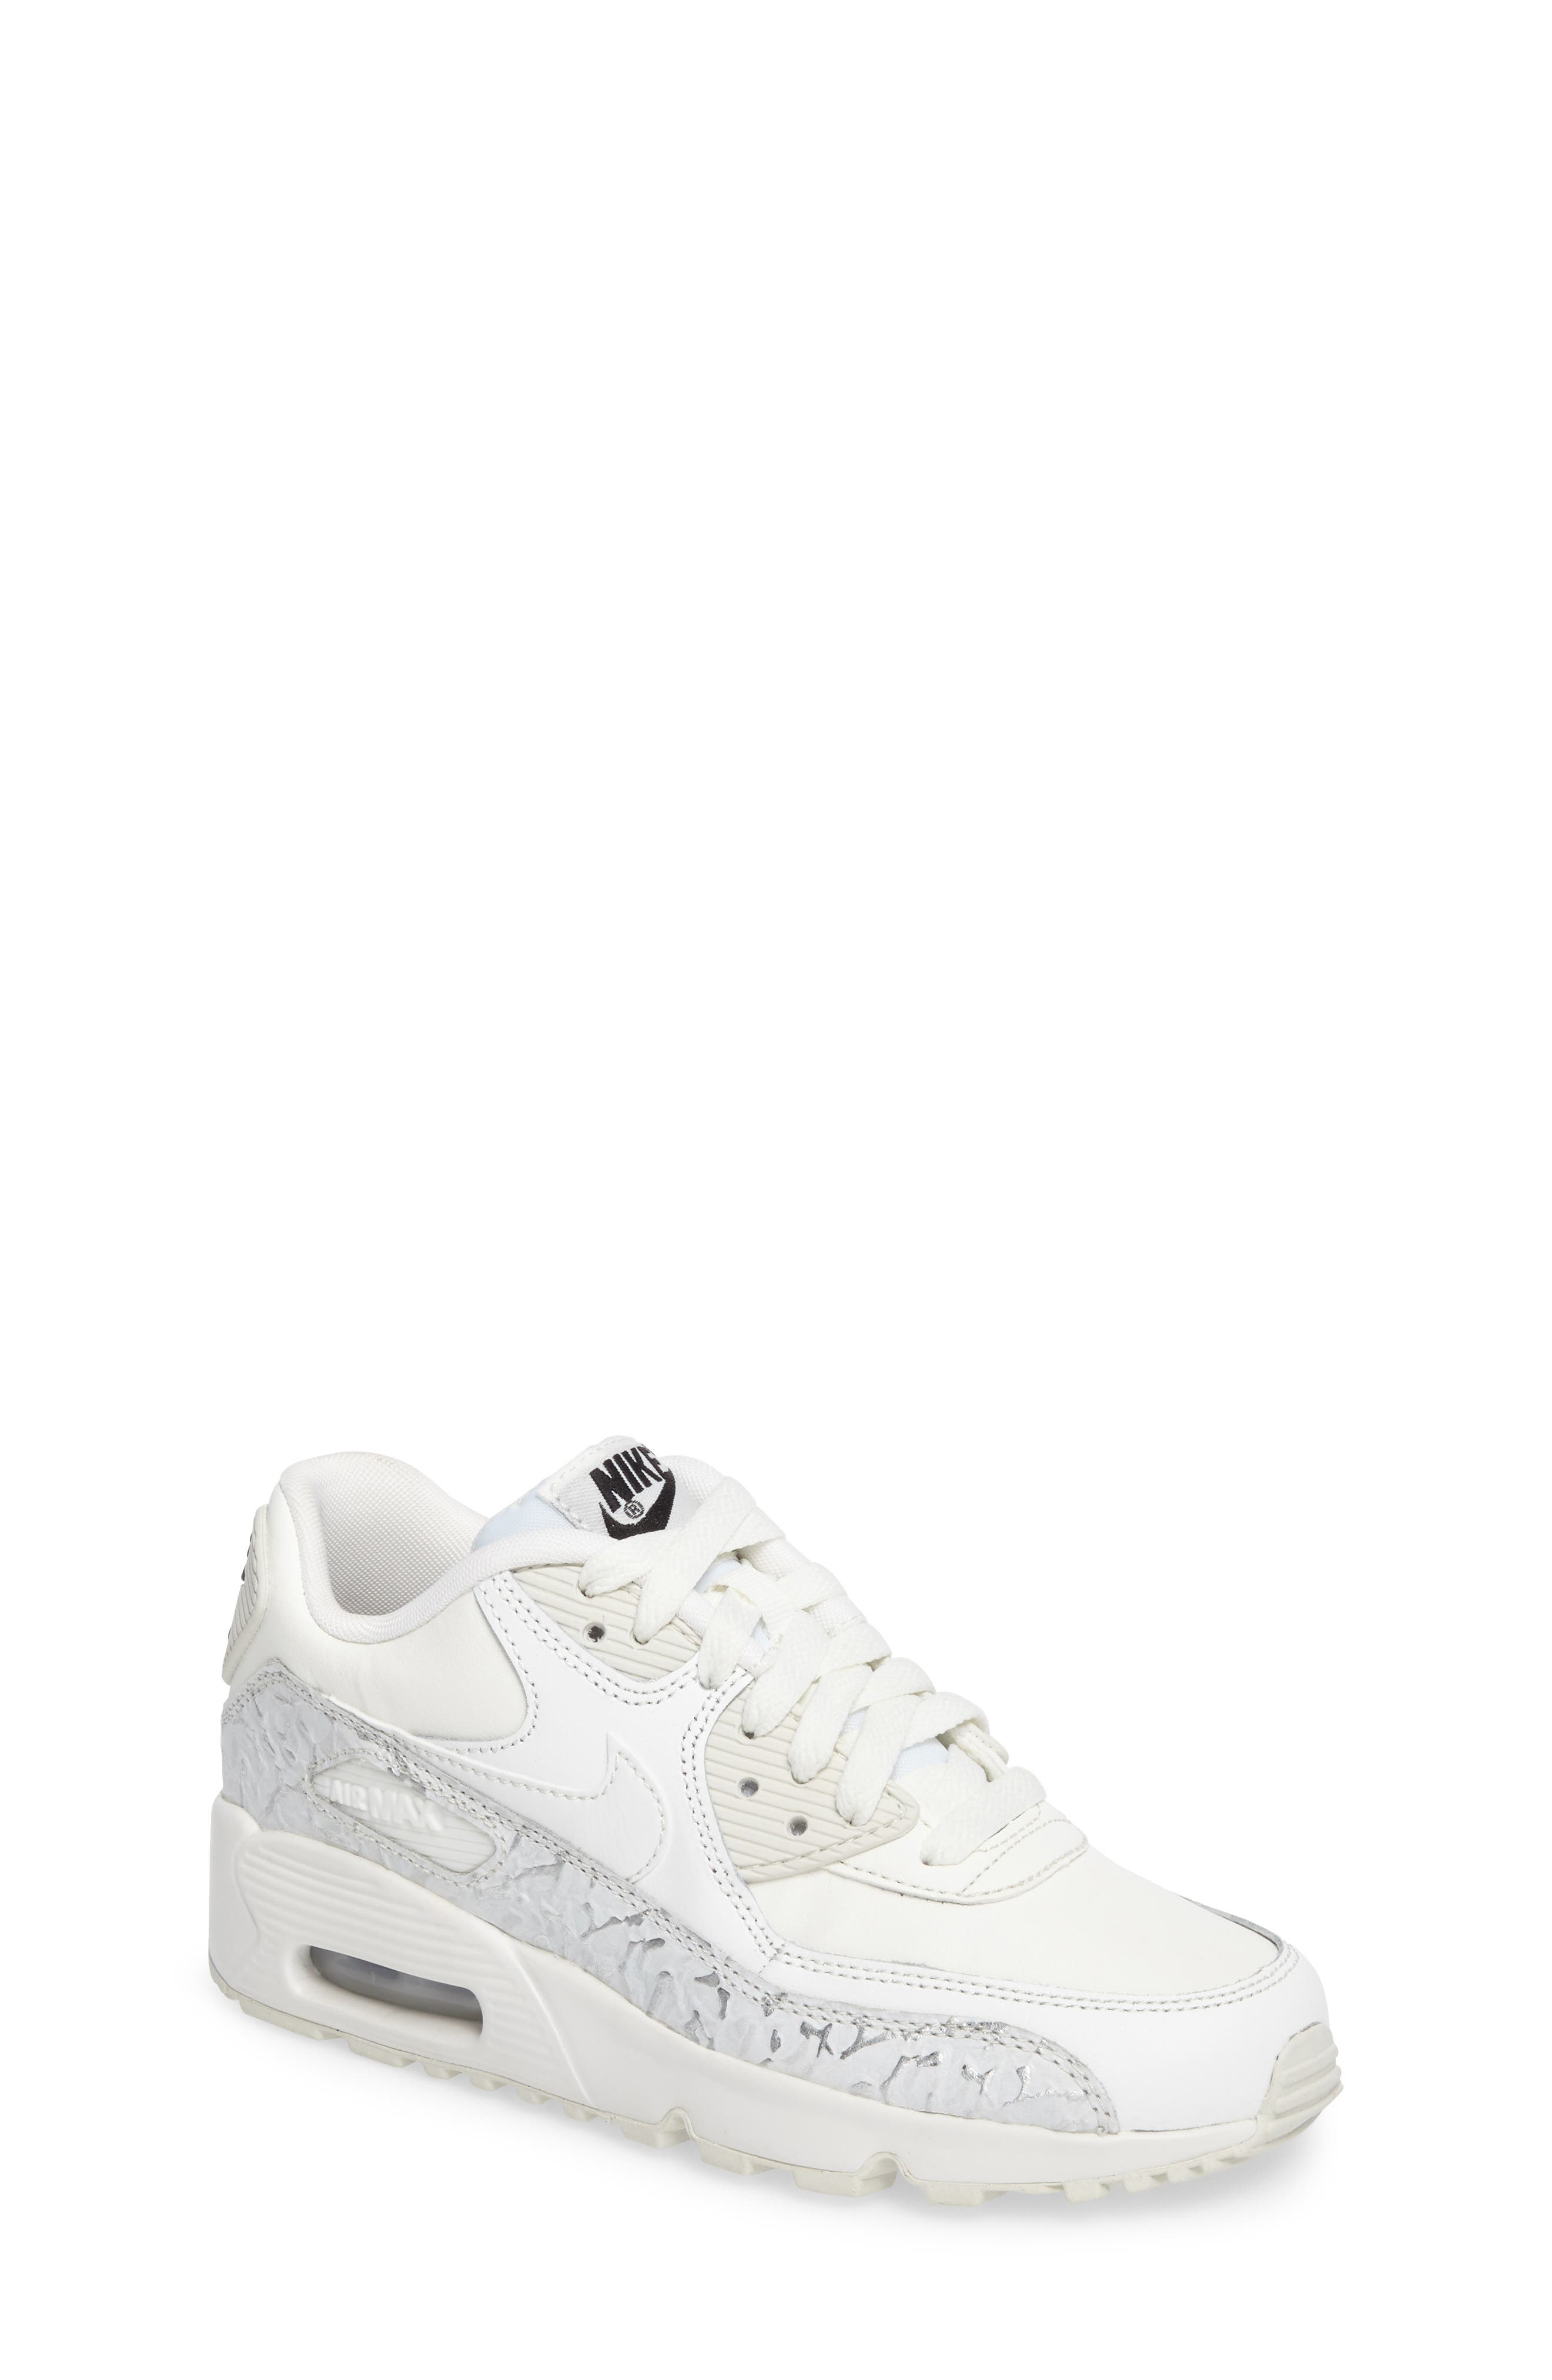 Air Max 90 Leather Sneaker,                             Main thumbnail 1, color,                             Summit White/ Black